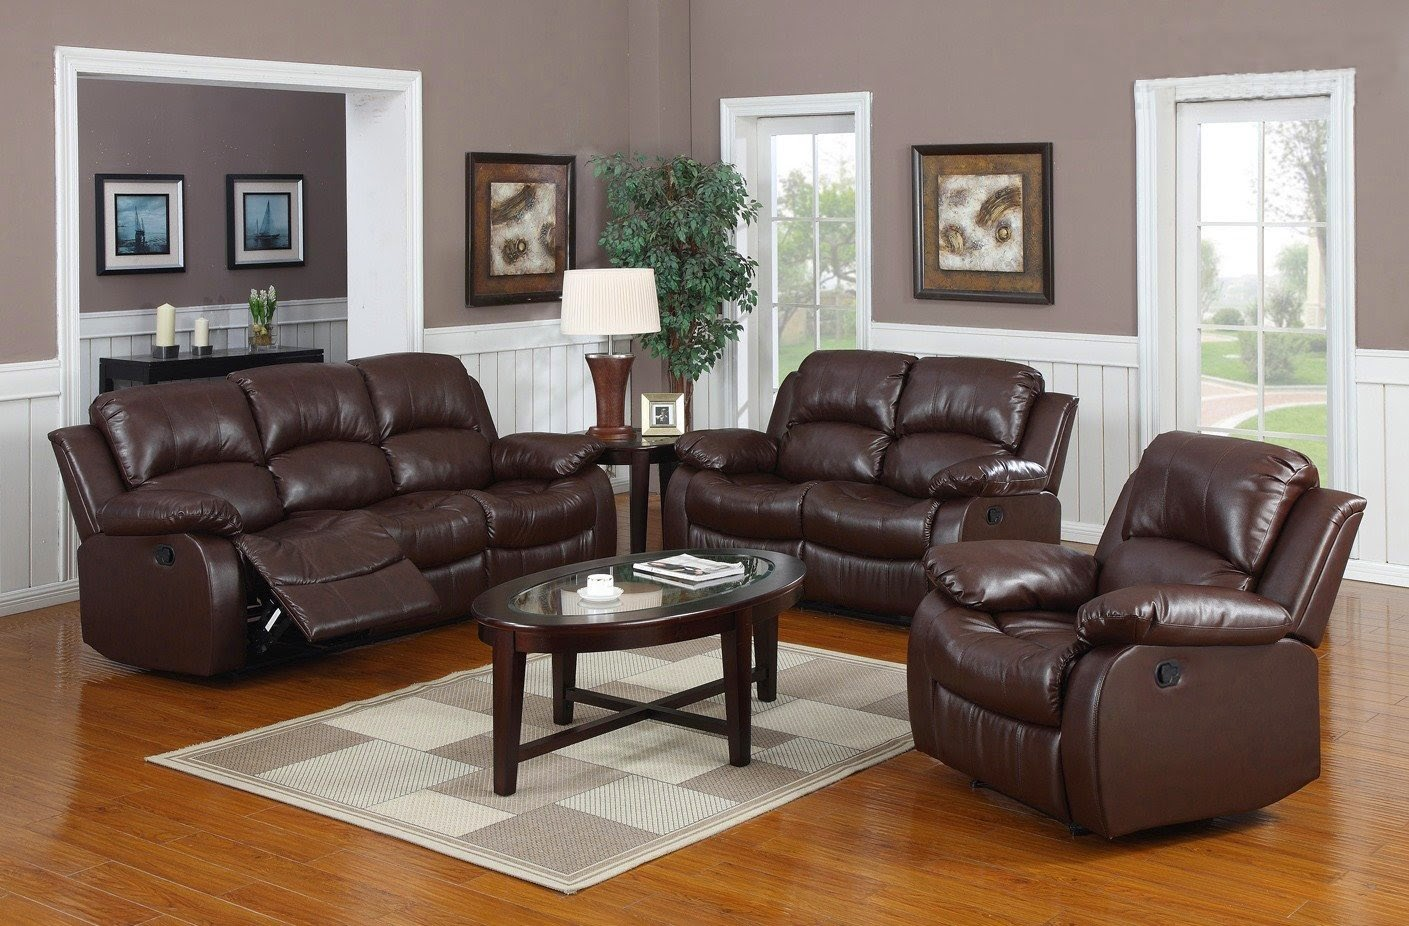 almafi 2 piece leather sofa set and love seat sears black sleeper cheap reclining sofas sale costco